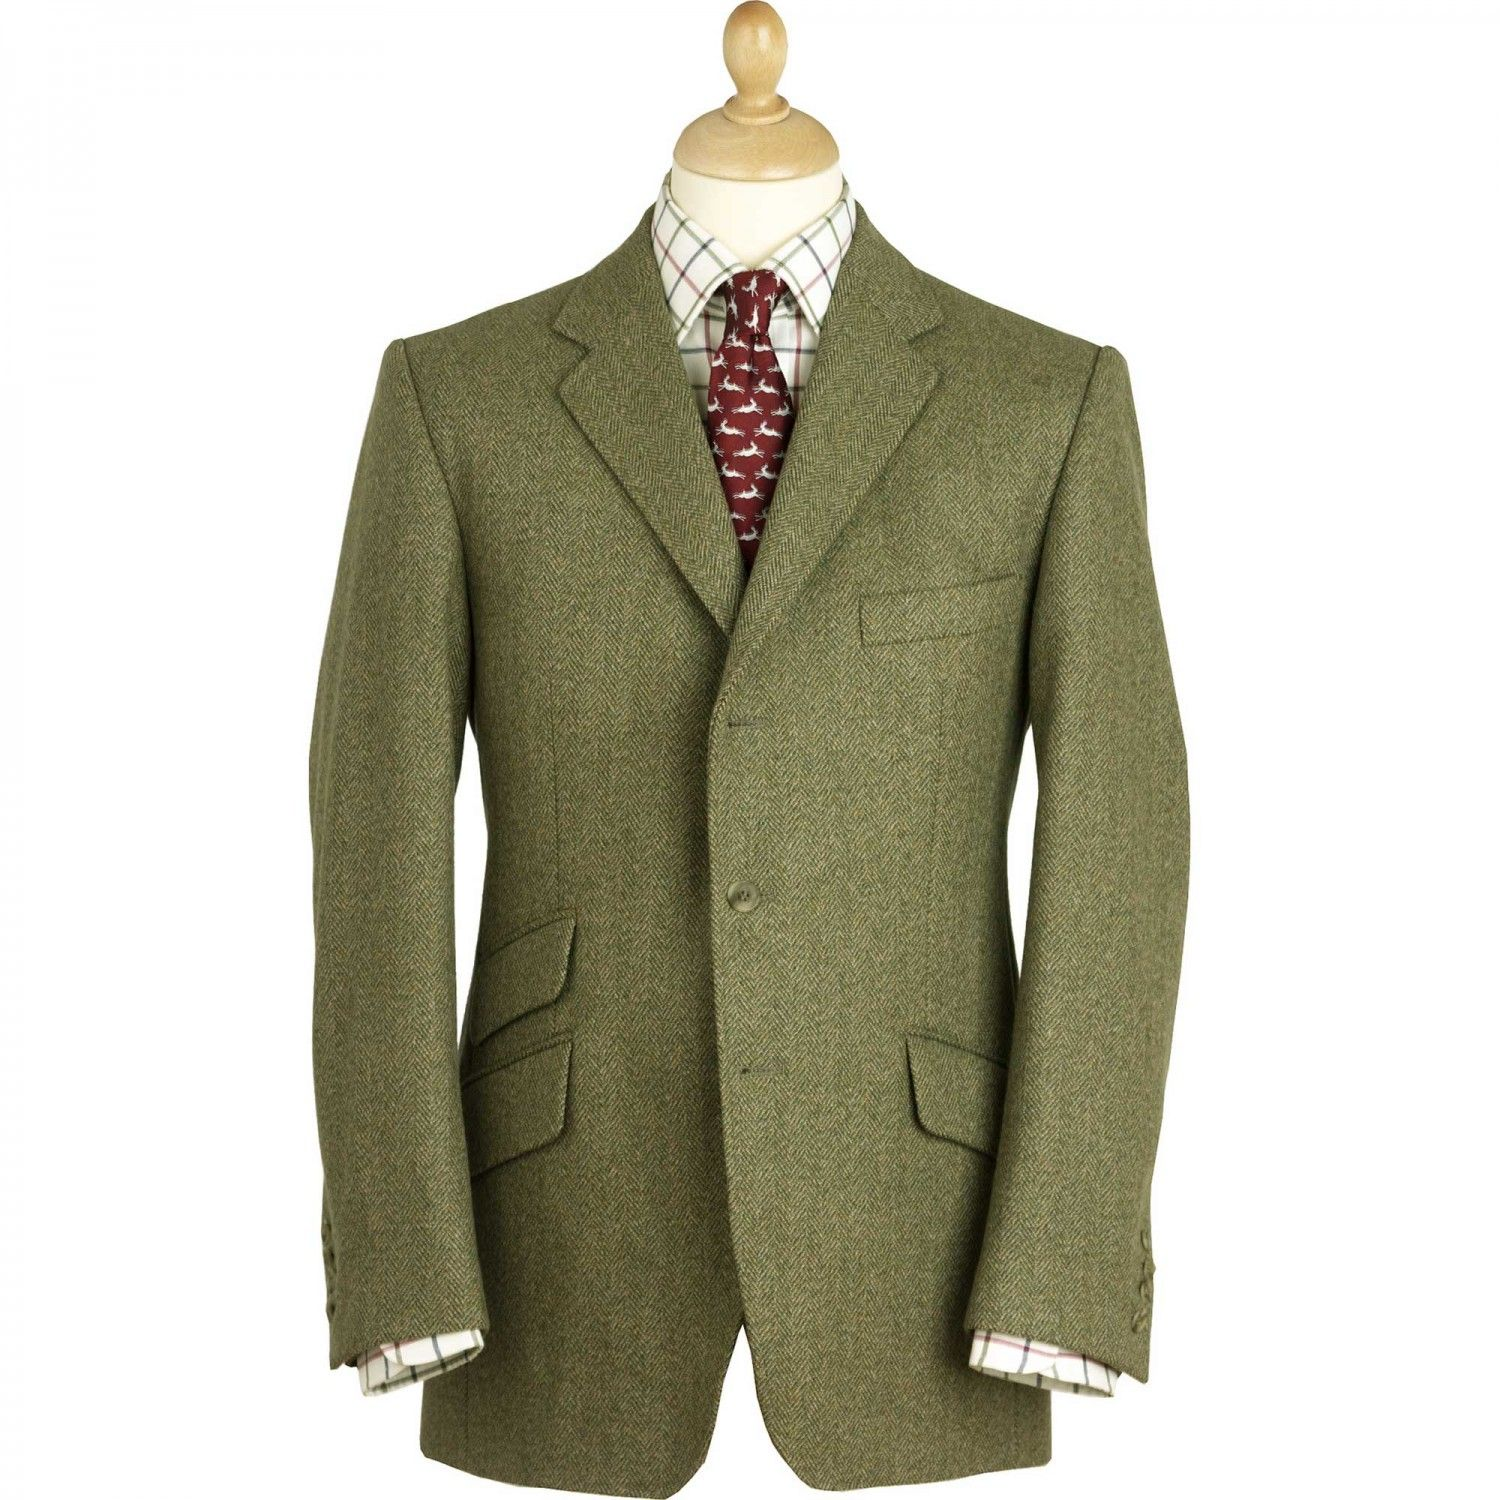 3 Piece Windowpane Check Tweed Wedding Suit. For more tweed suits